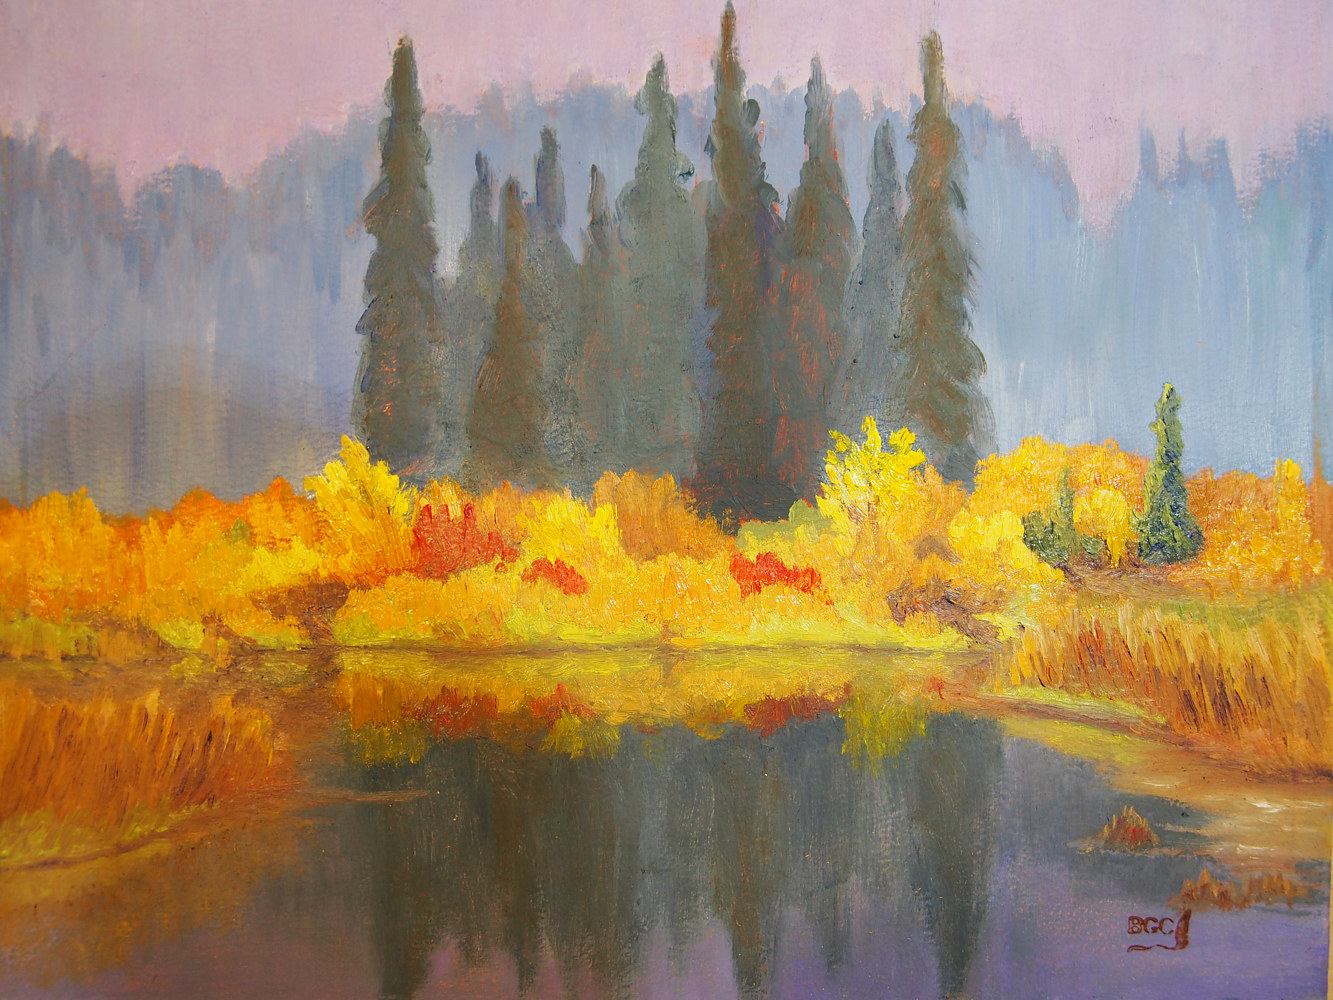 Oil painting Edge of the Pond by Brent Ciccone